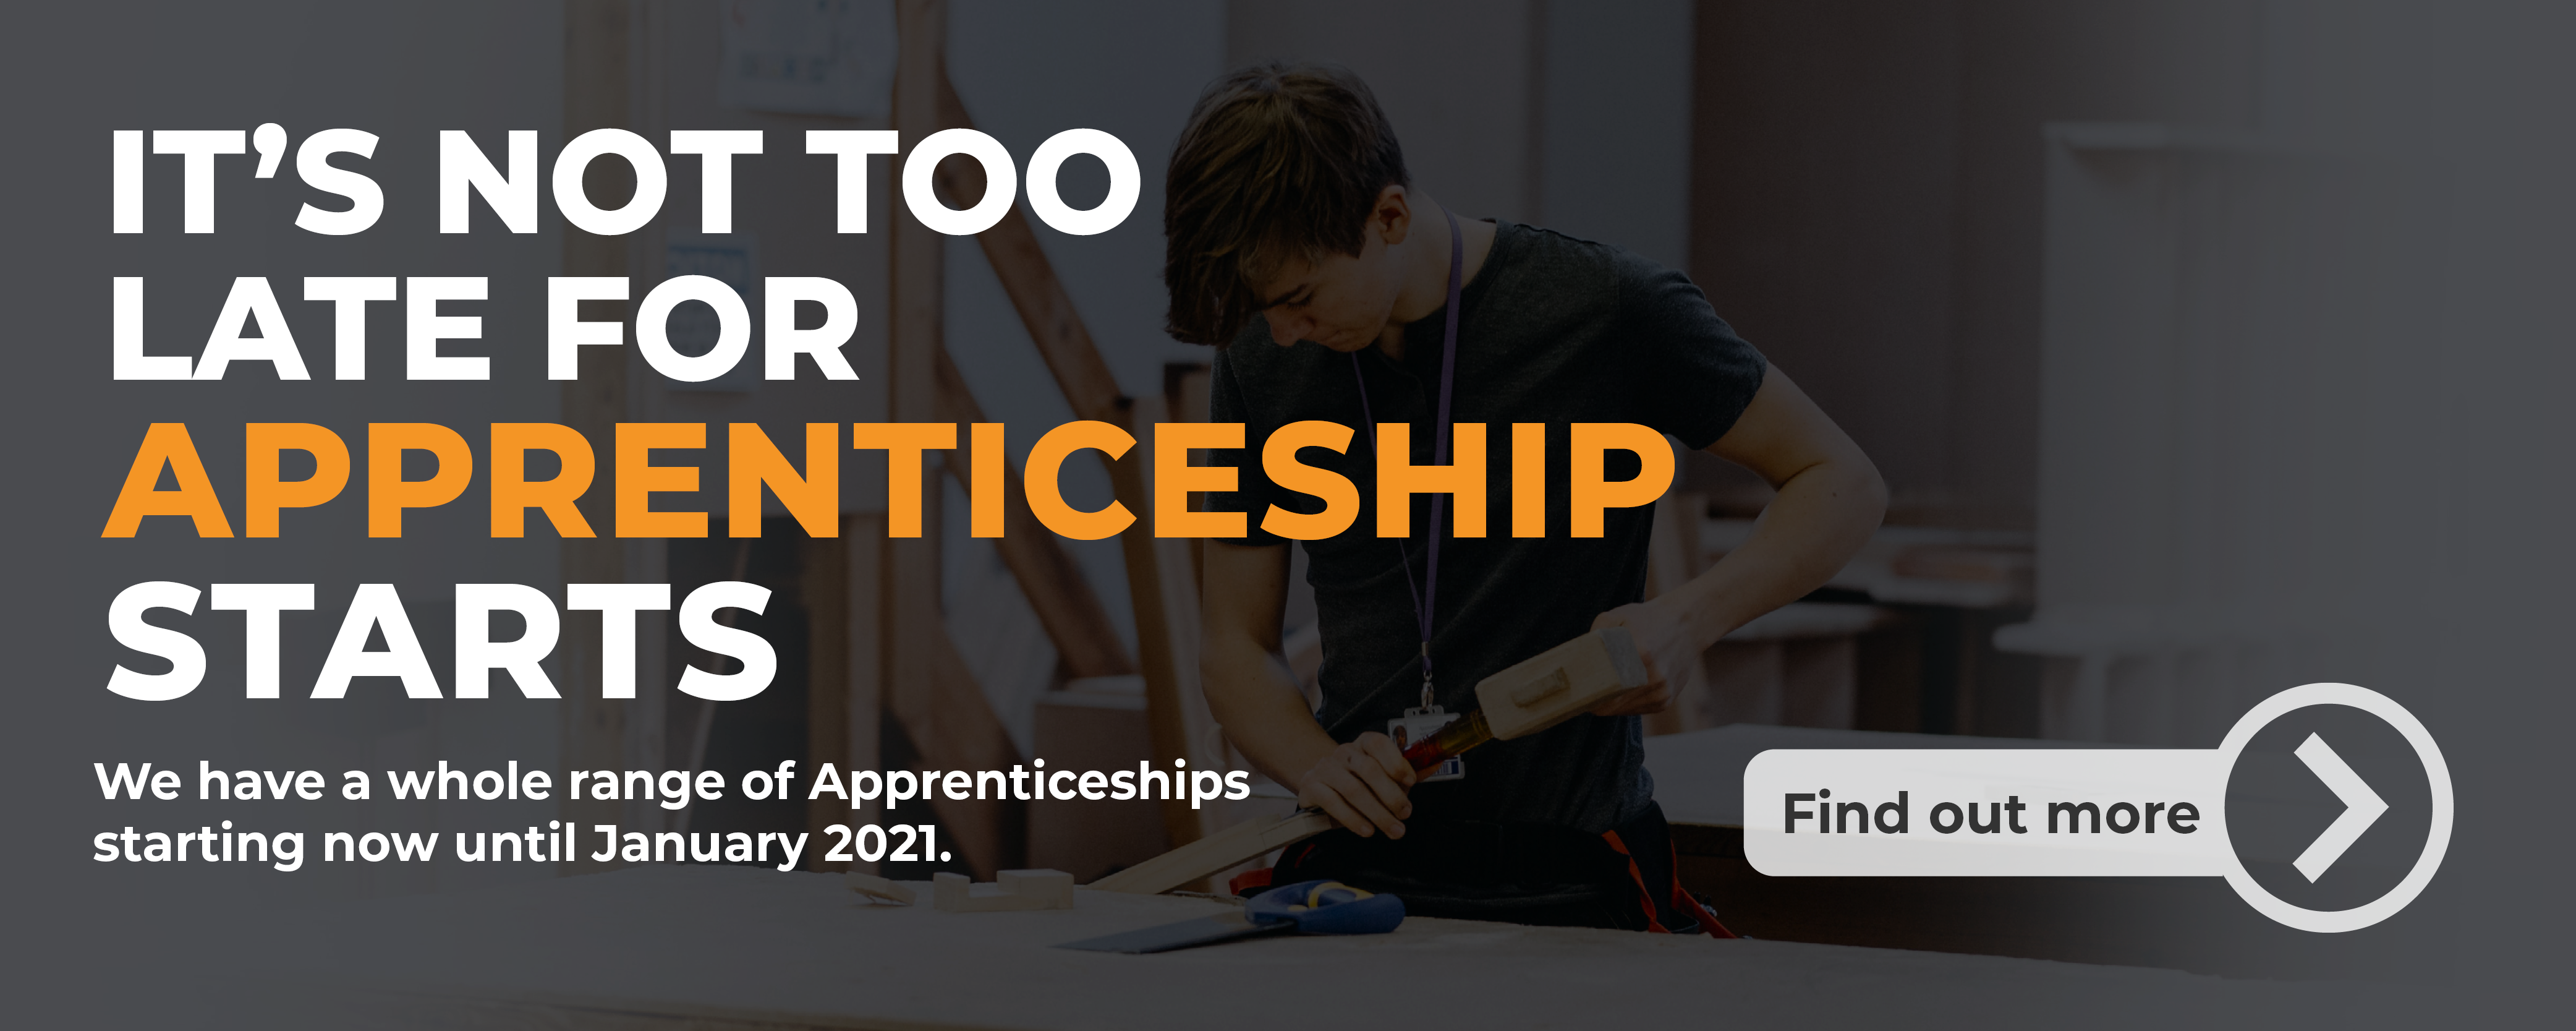 It's not too late for apprenticeship starts